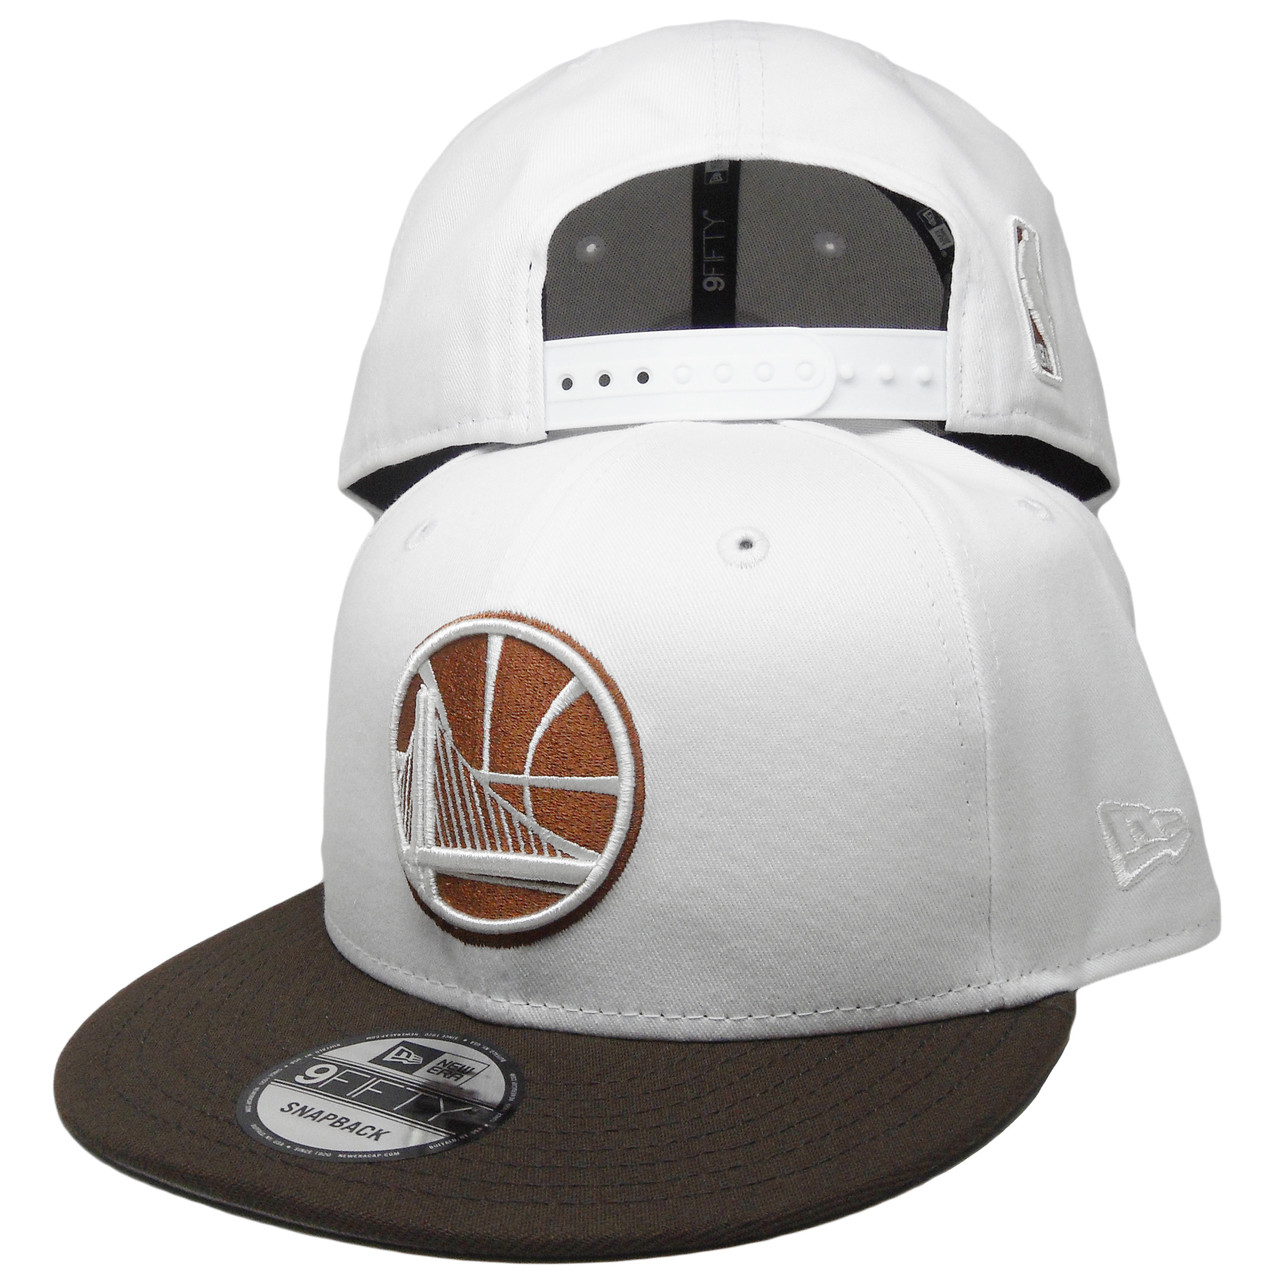 huge selection of f21da 1d551 Golden State Warriors New Era Custom 9Fifty Snapback Hat - White, Brown